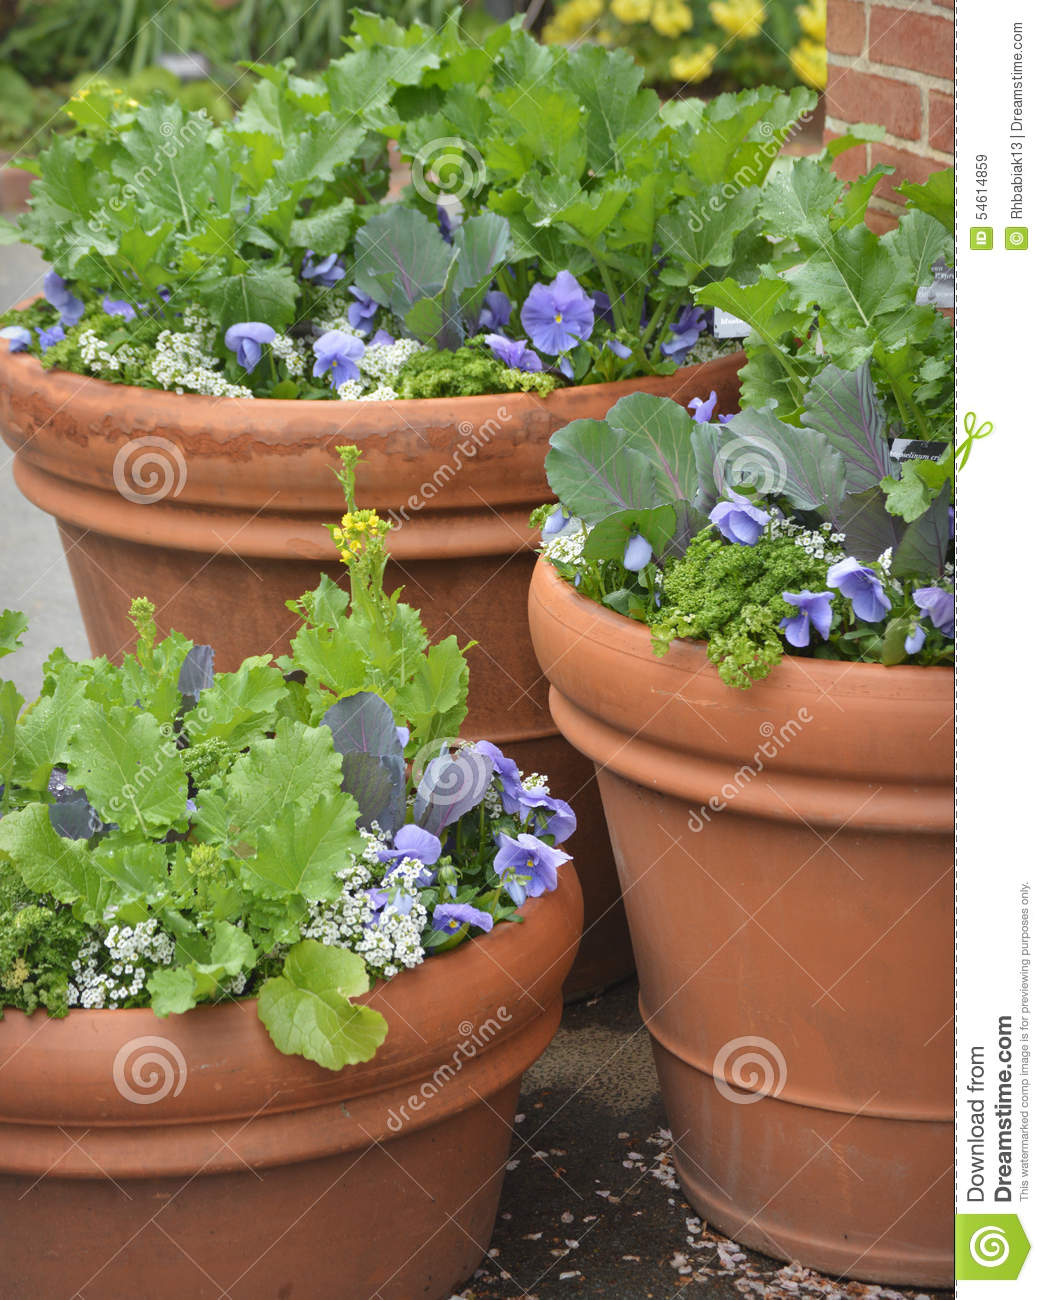 Lettuce Container Garden: Container Gardening Stock Photo